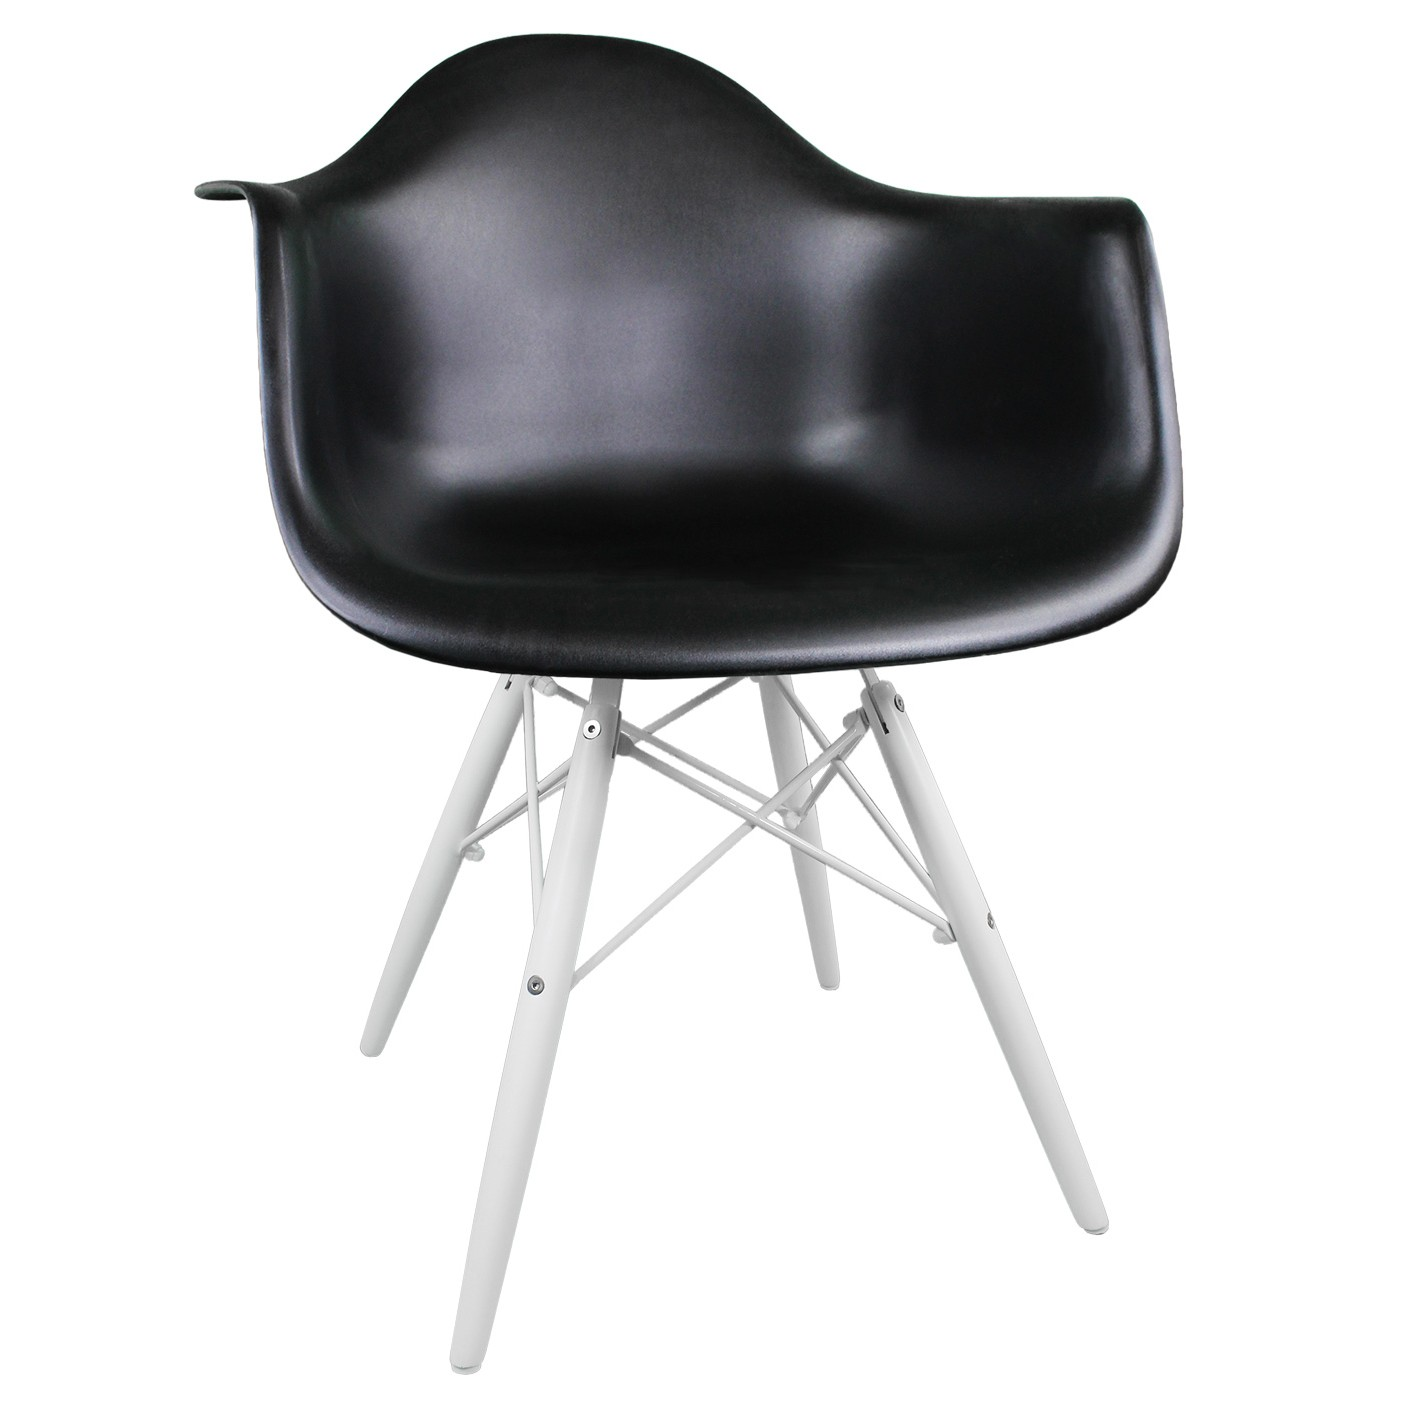 Superb img of  DAW Molded Black Plastic Accent Arm Chair with White Wood Eiffel Legs with #5D5E6E color and 1403x1403 pixels